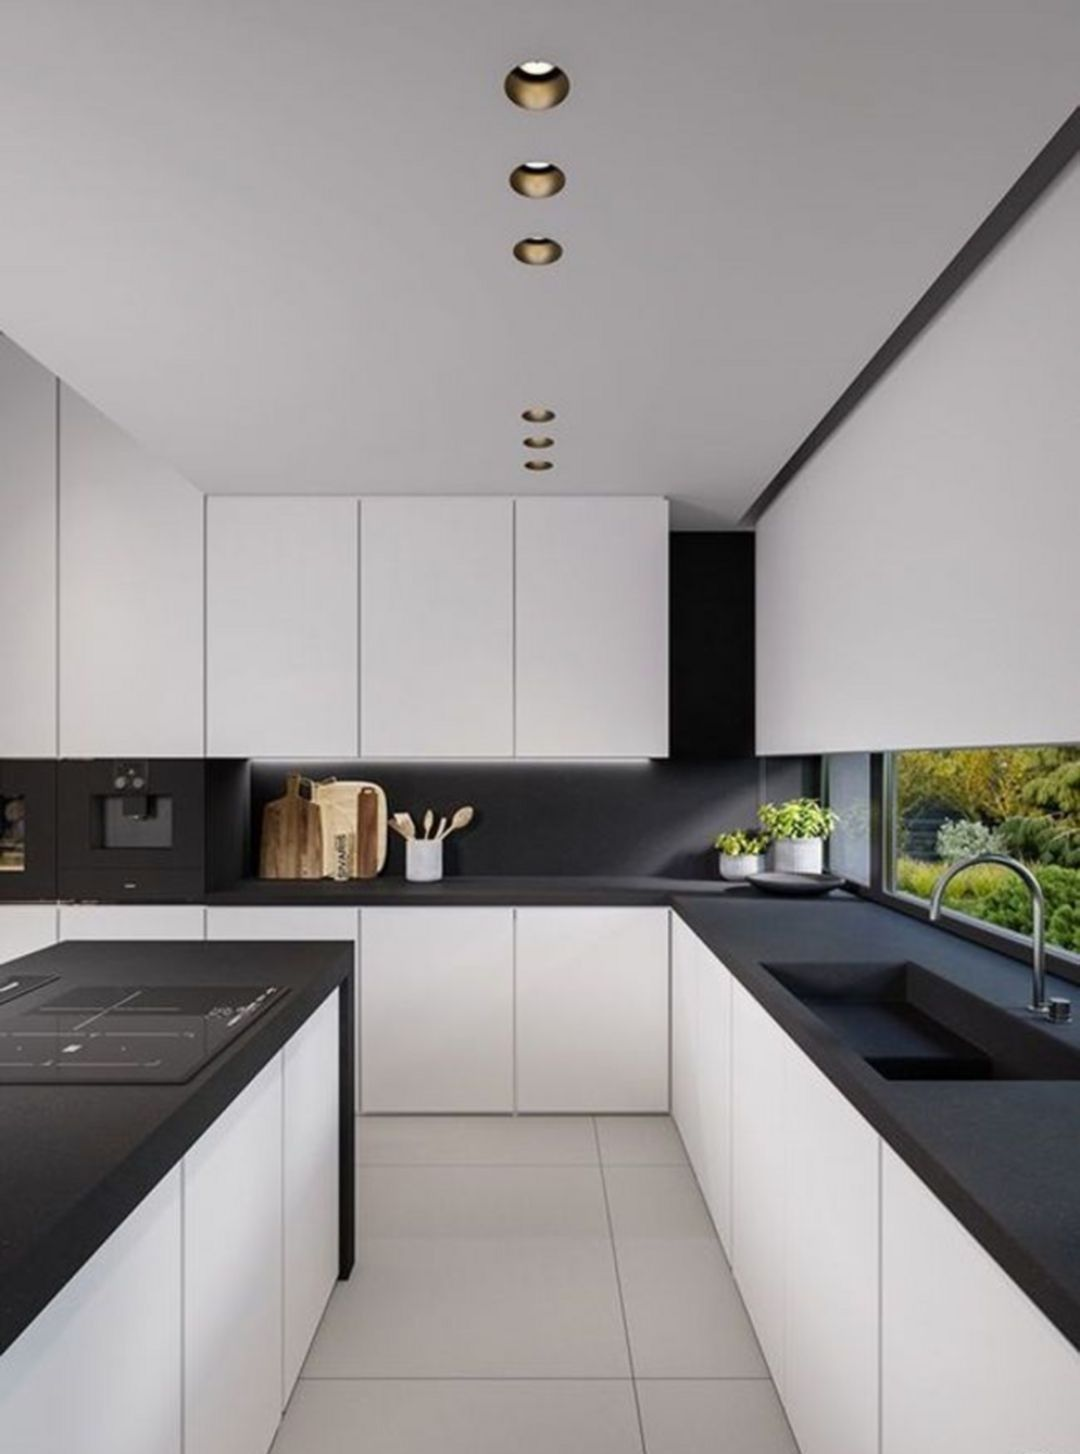 amazing here are 15 modern minimalist kitchen design ideas in 2019 kitchen cabinet design on a kitchen design id=53322